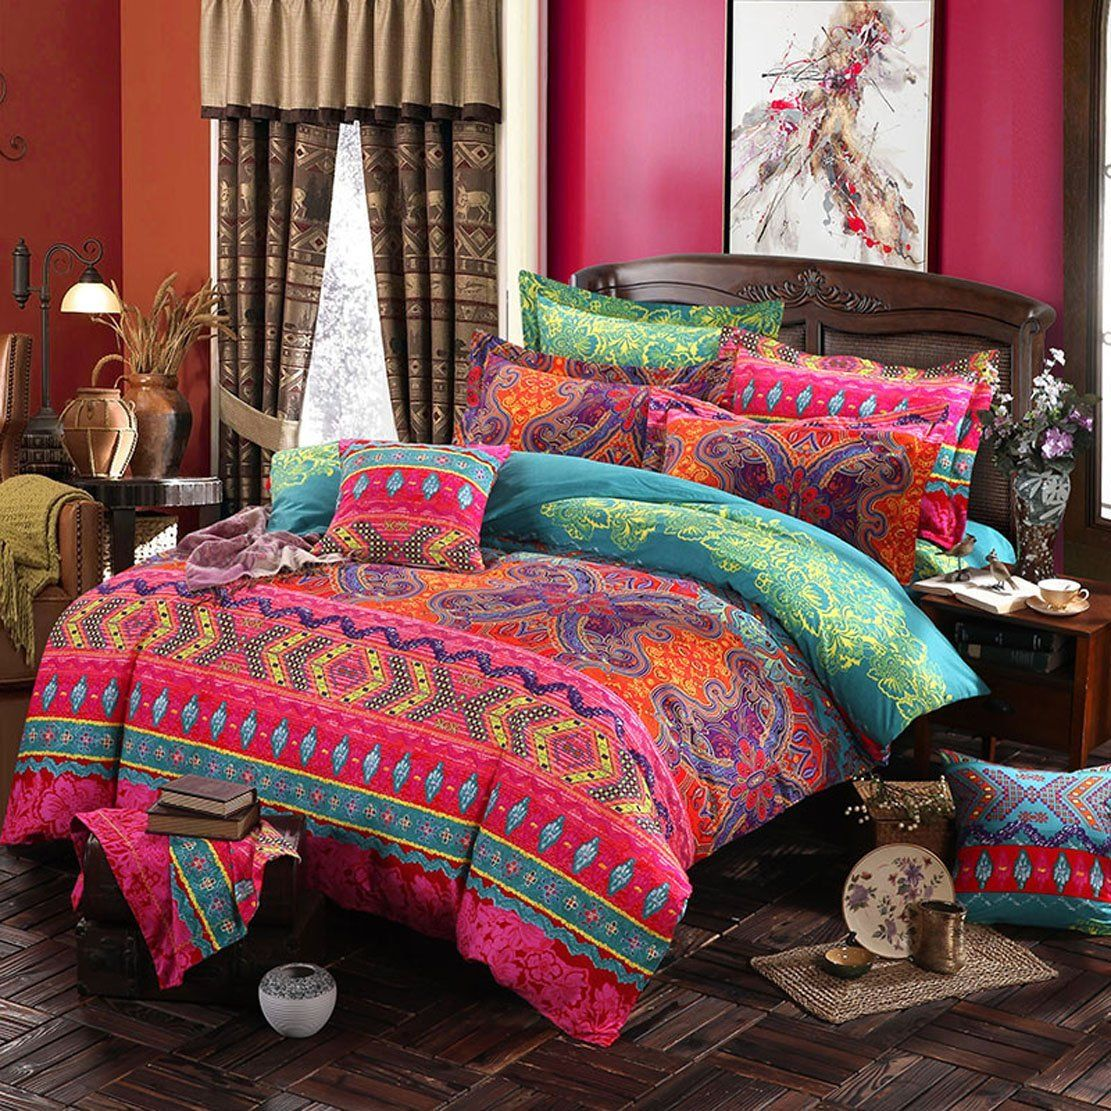 Bohemian Bettwäsche Maxyoyo New Boho Style Duvet Cover Set Colorful Stripe